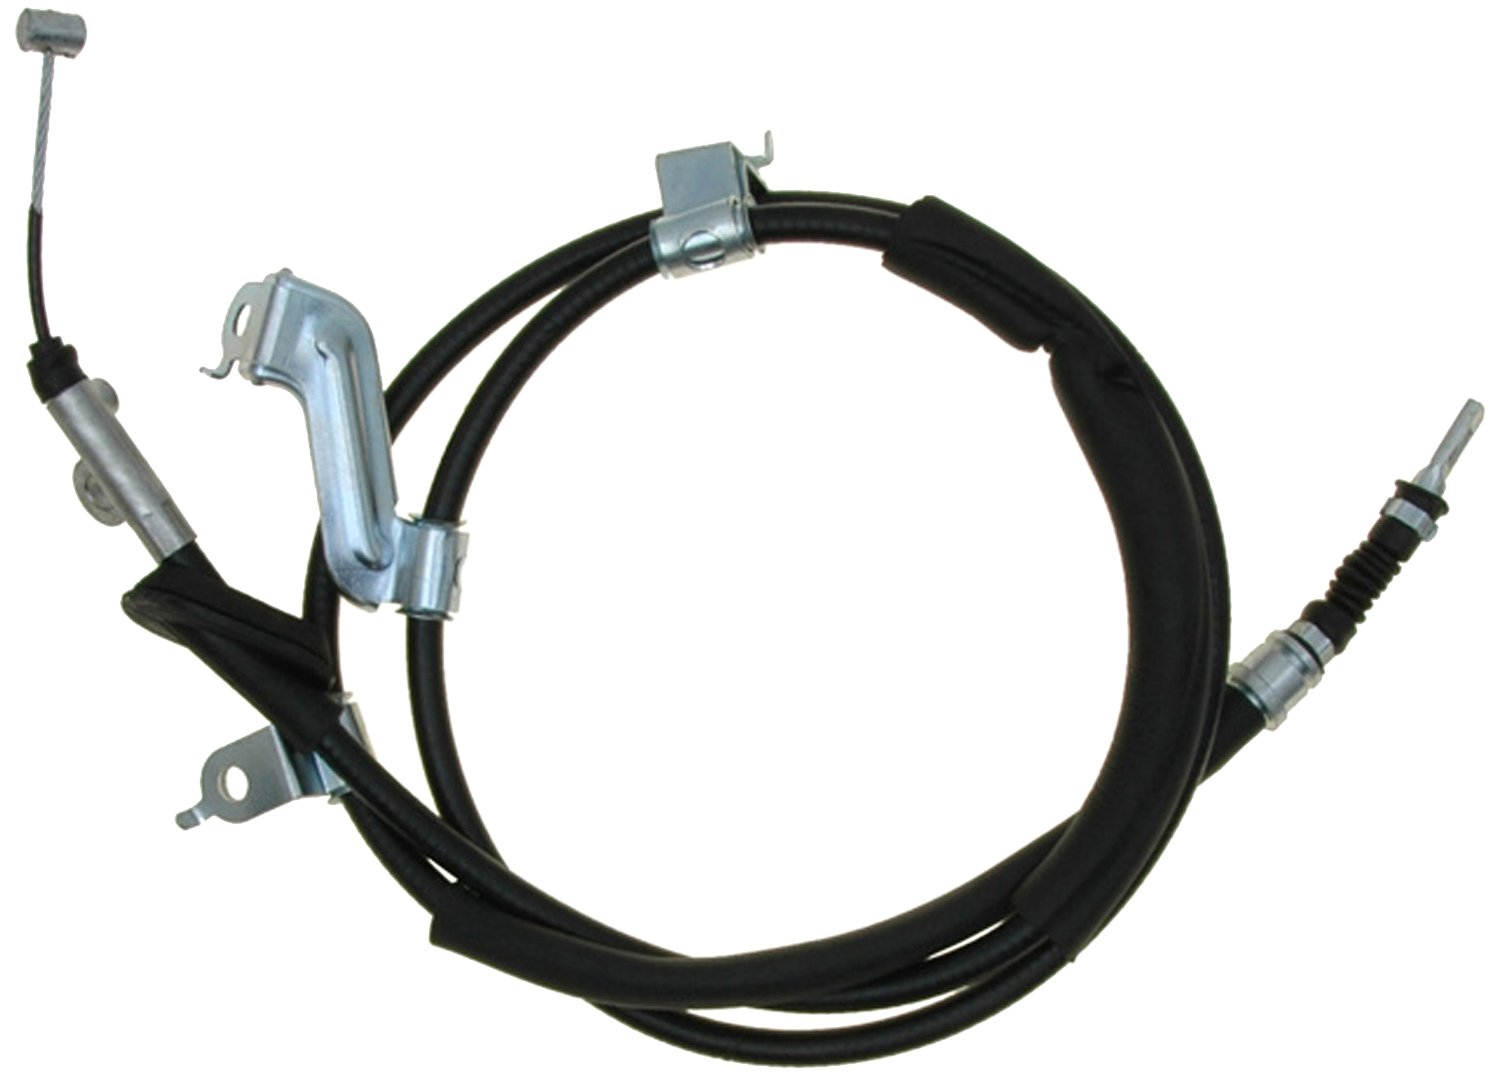 ACDelco 18P2857 Professional Rear Parking Brake Cable